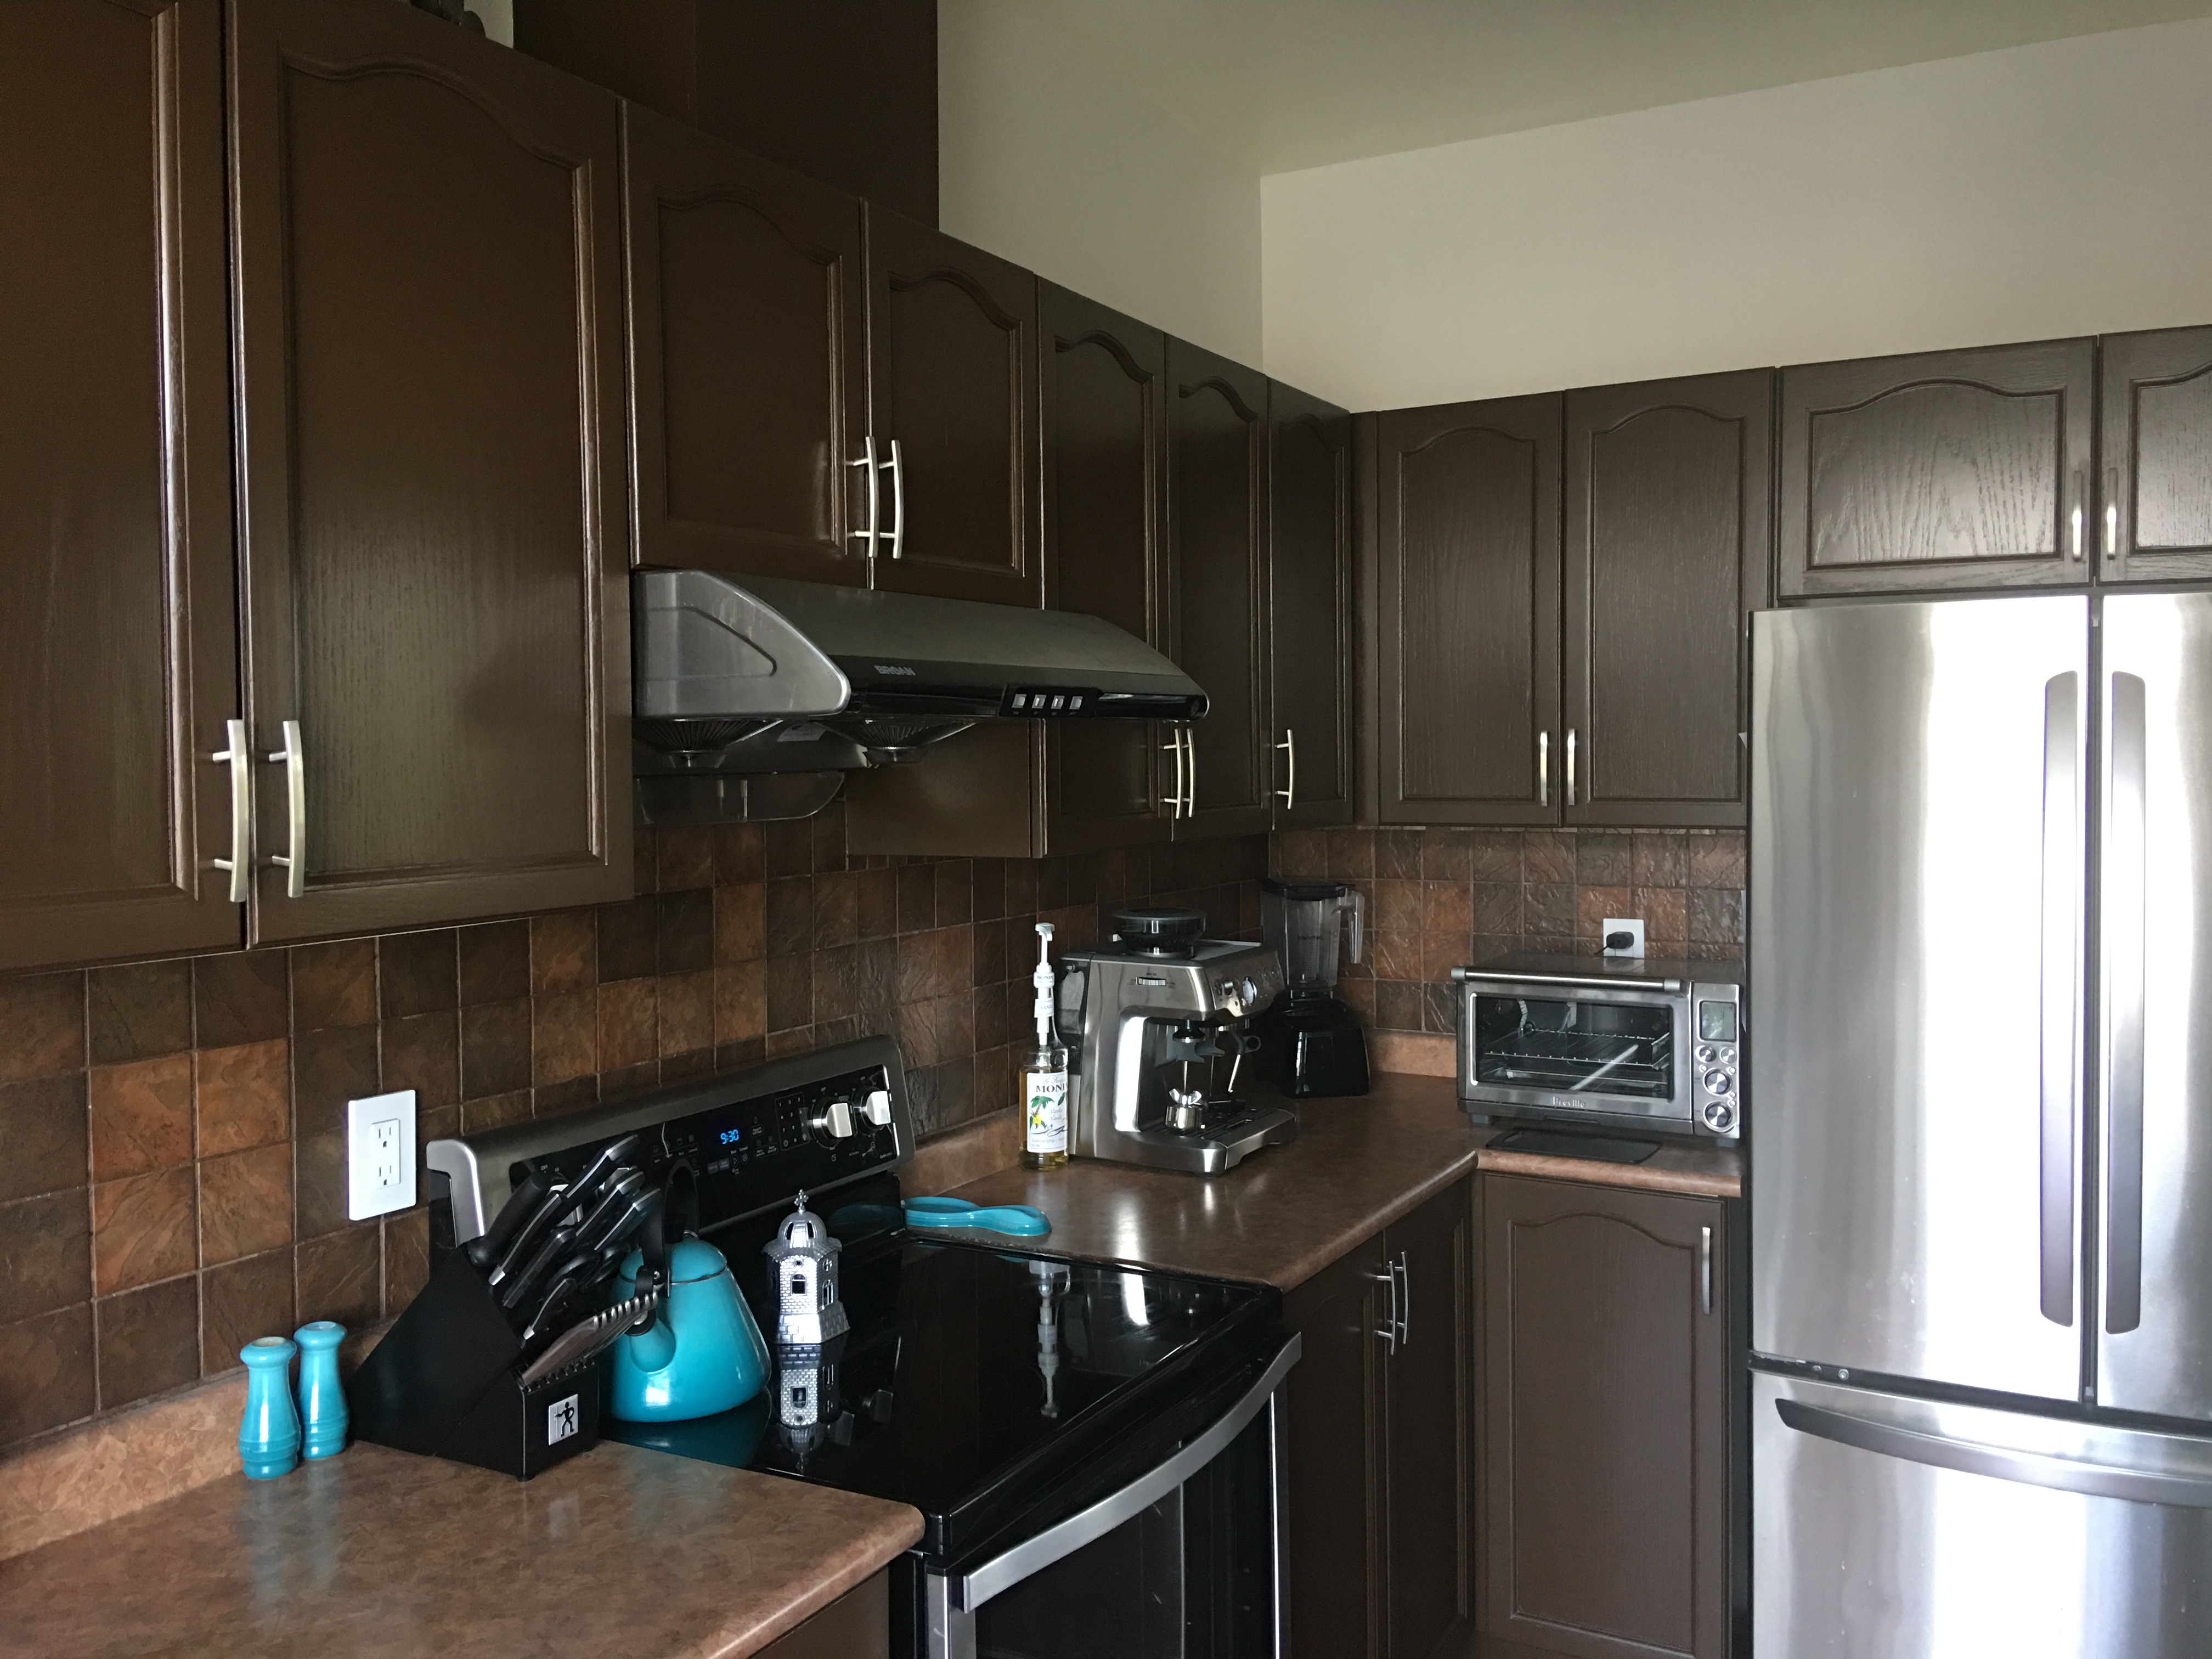 Our Kitchen Facelift